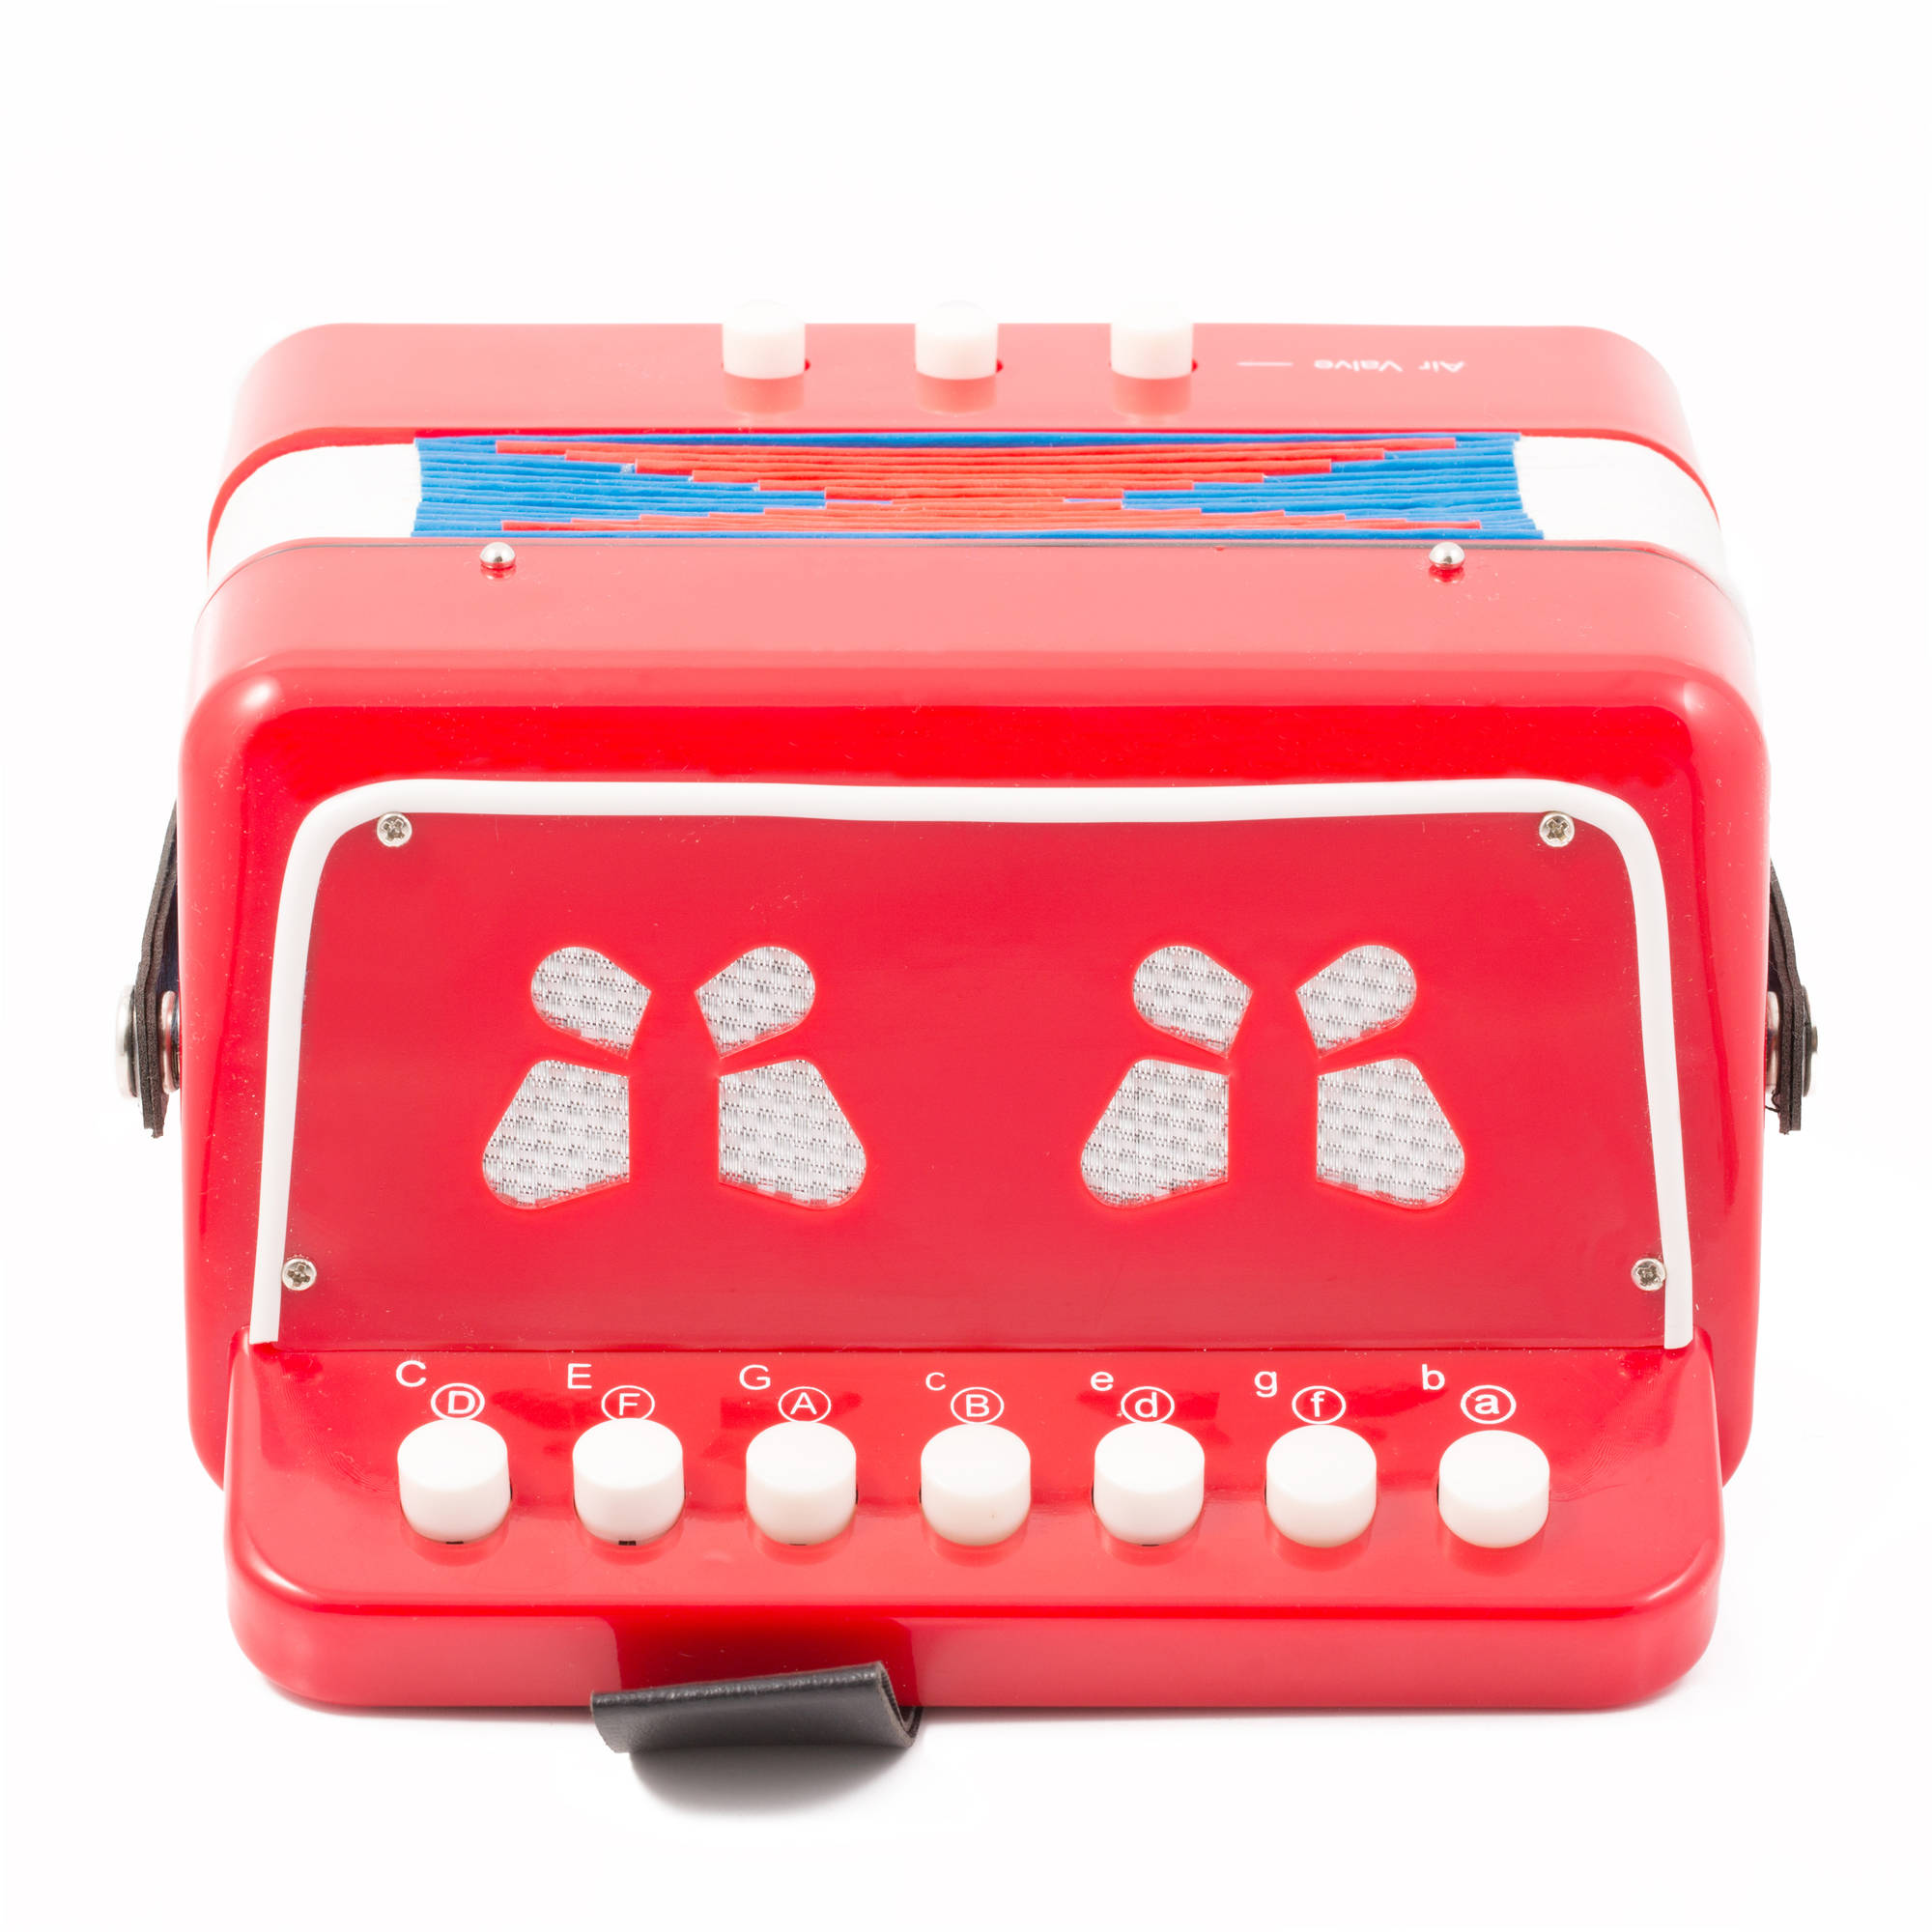 Kayata 7 Keys 2 Bass Botton Accordion for Kids Children Educational Music Instrument Toy, Red